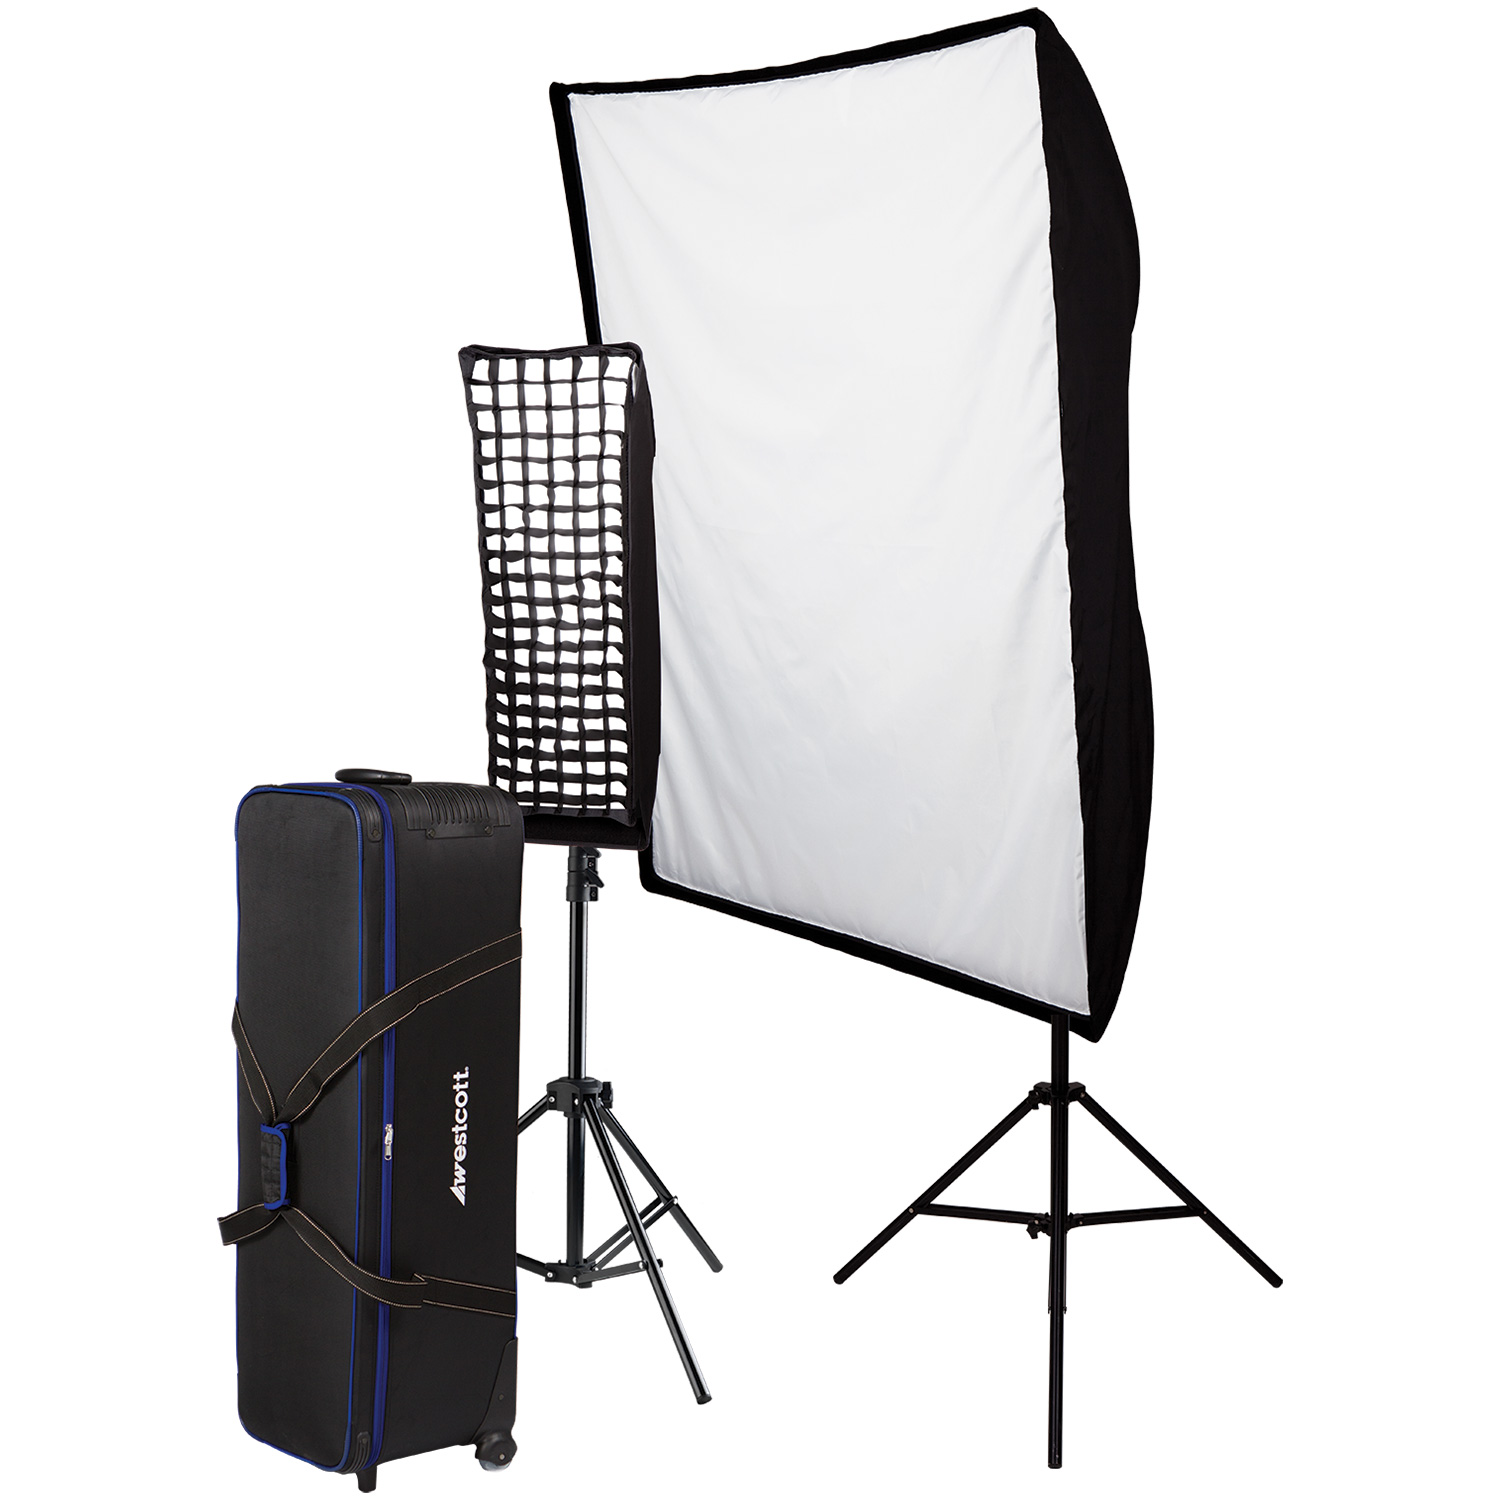 Spiderlite TD6 Perfect Portrait Kit